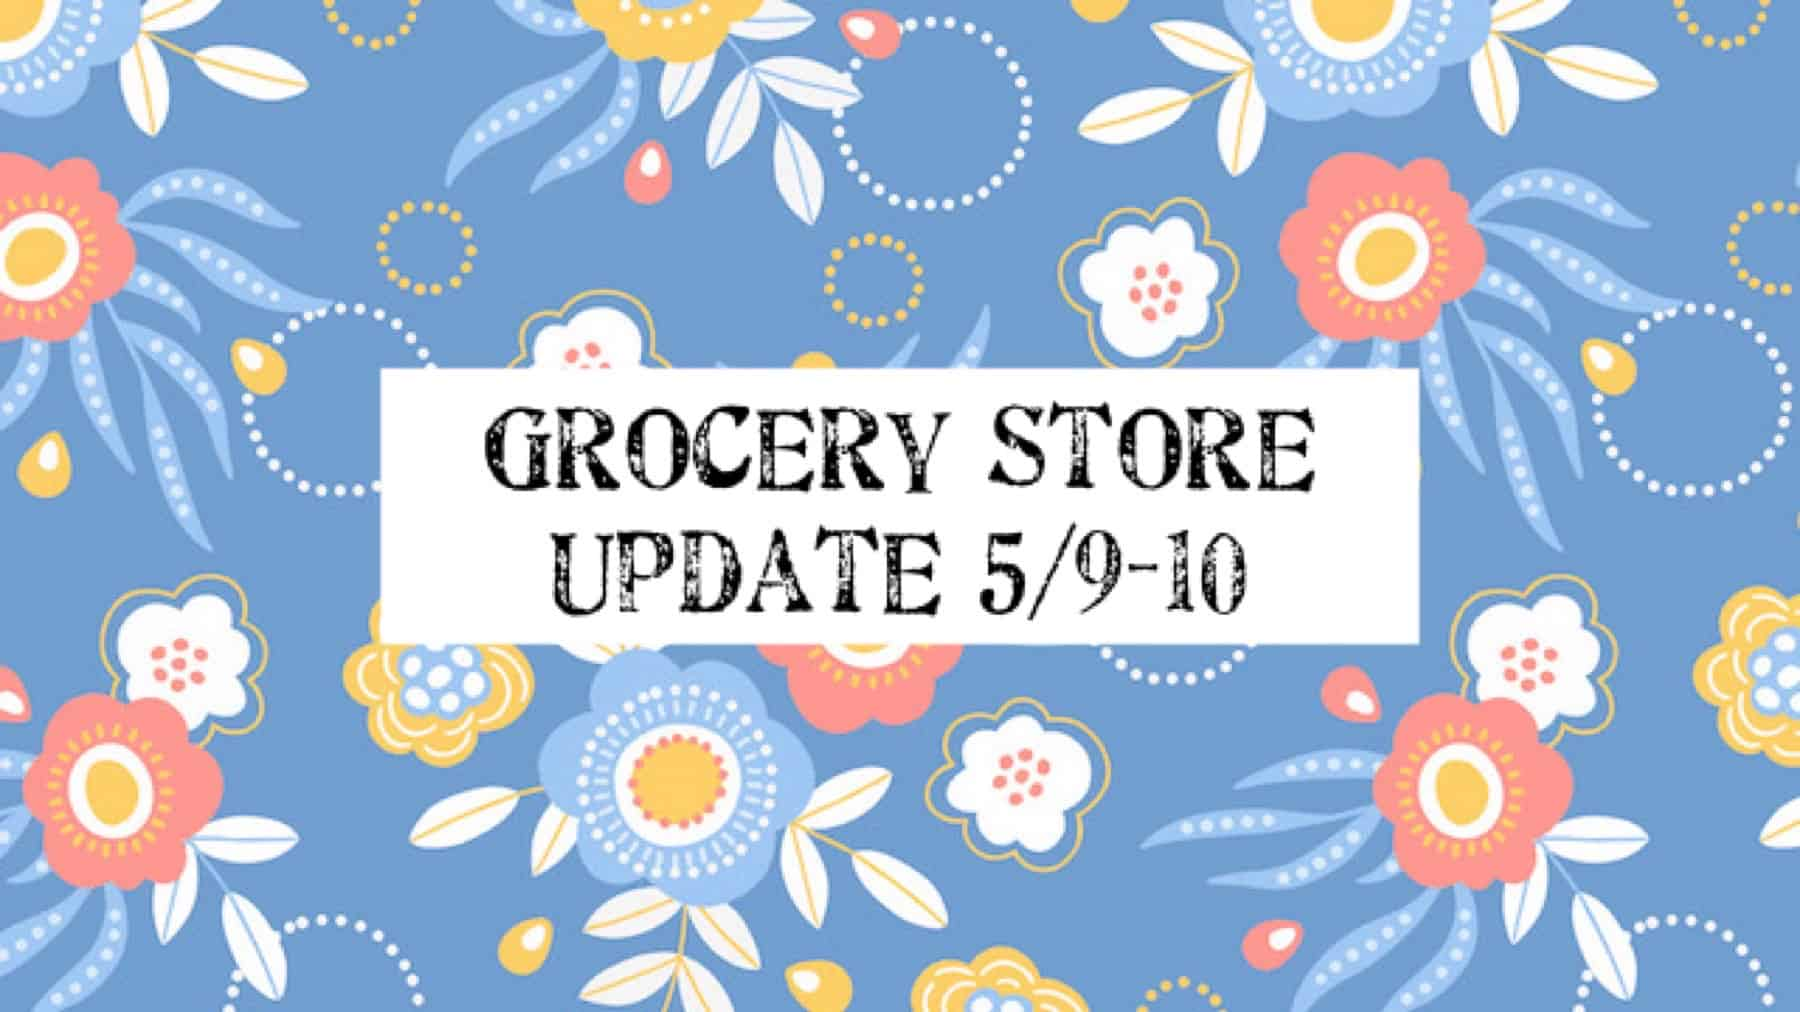 Route 1 Grocery Store Update